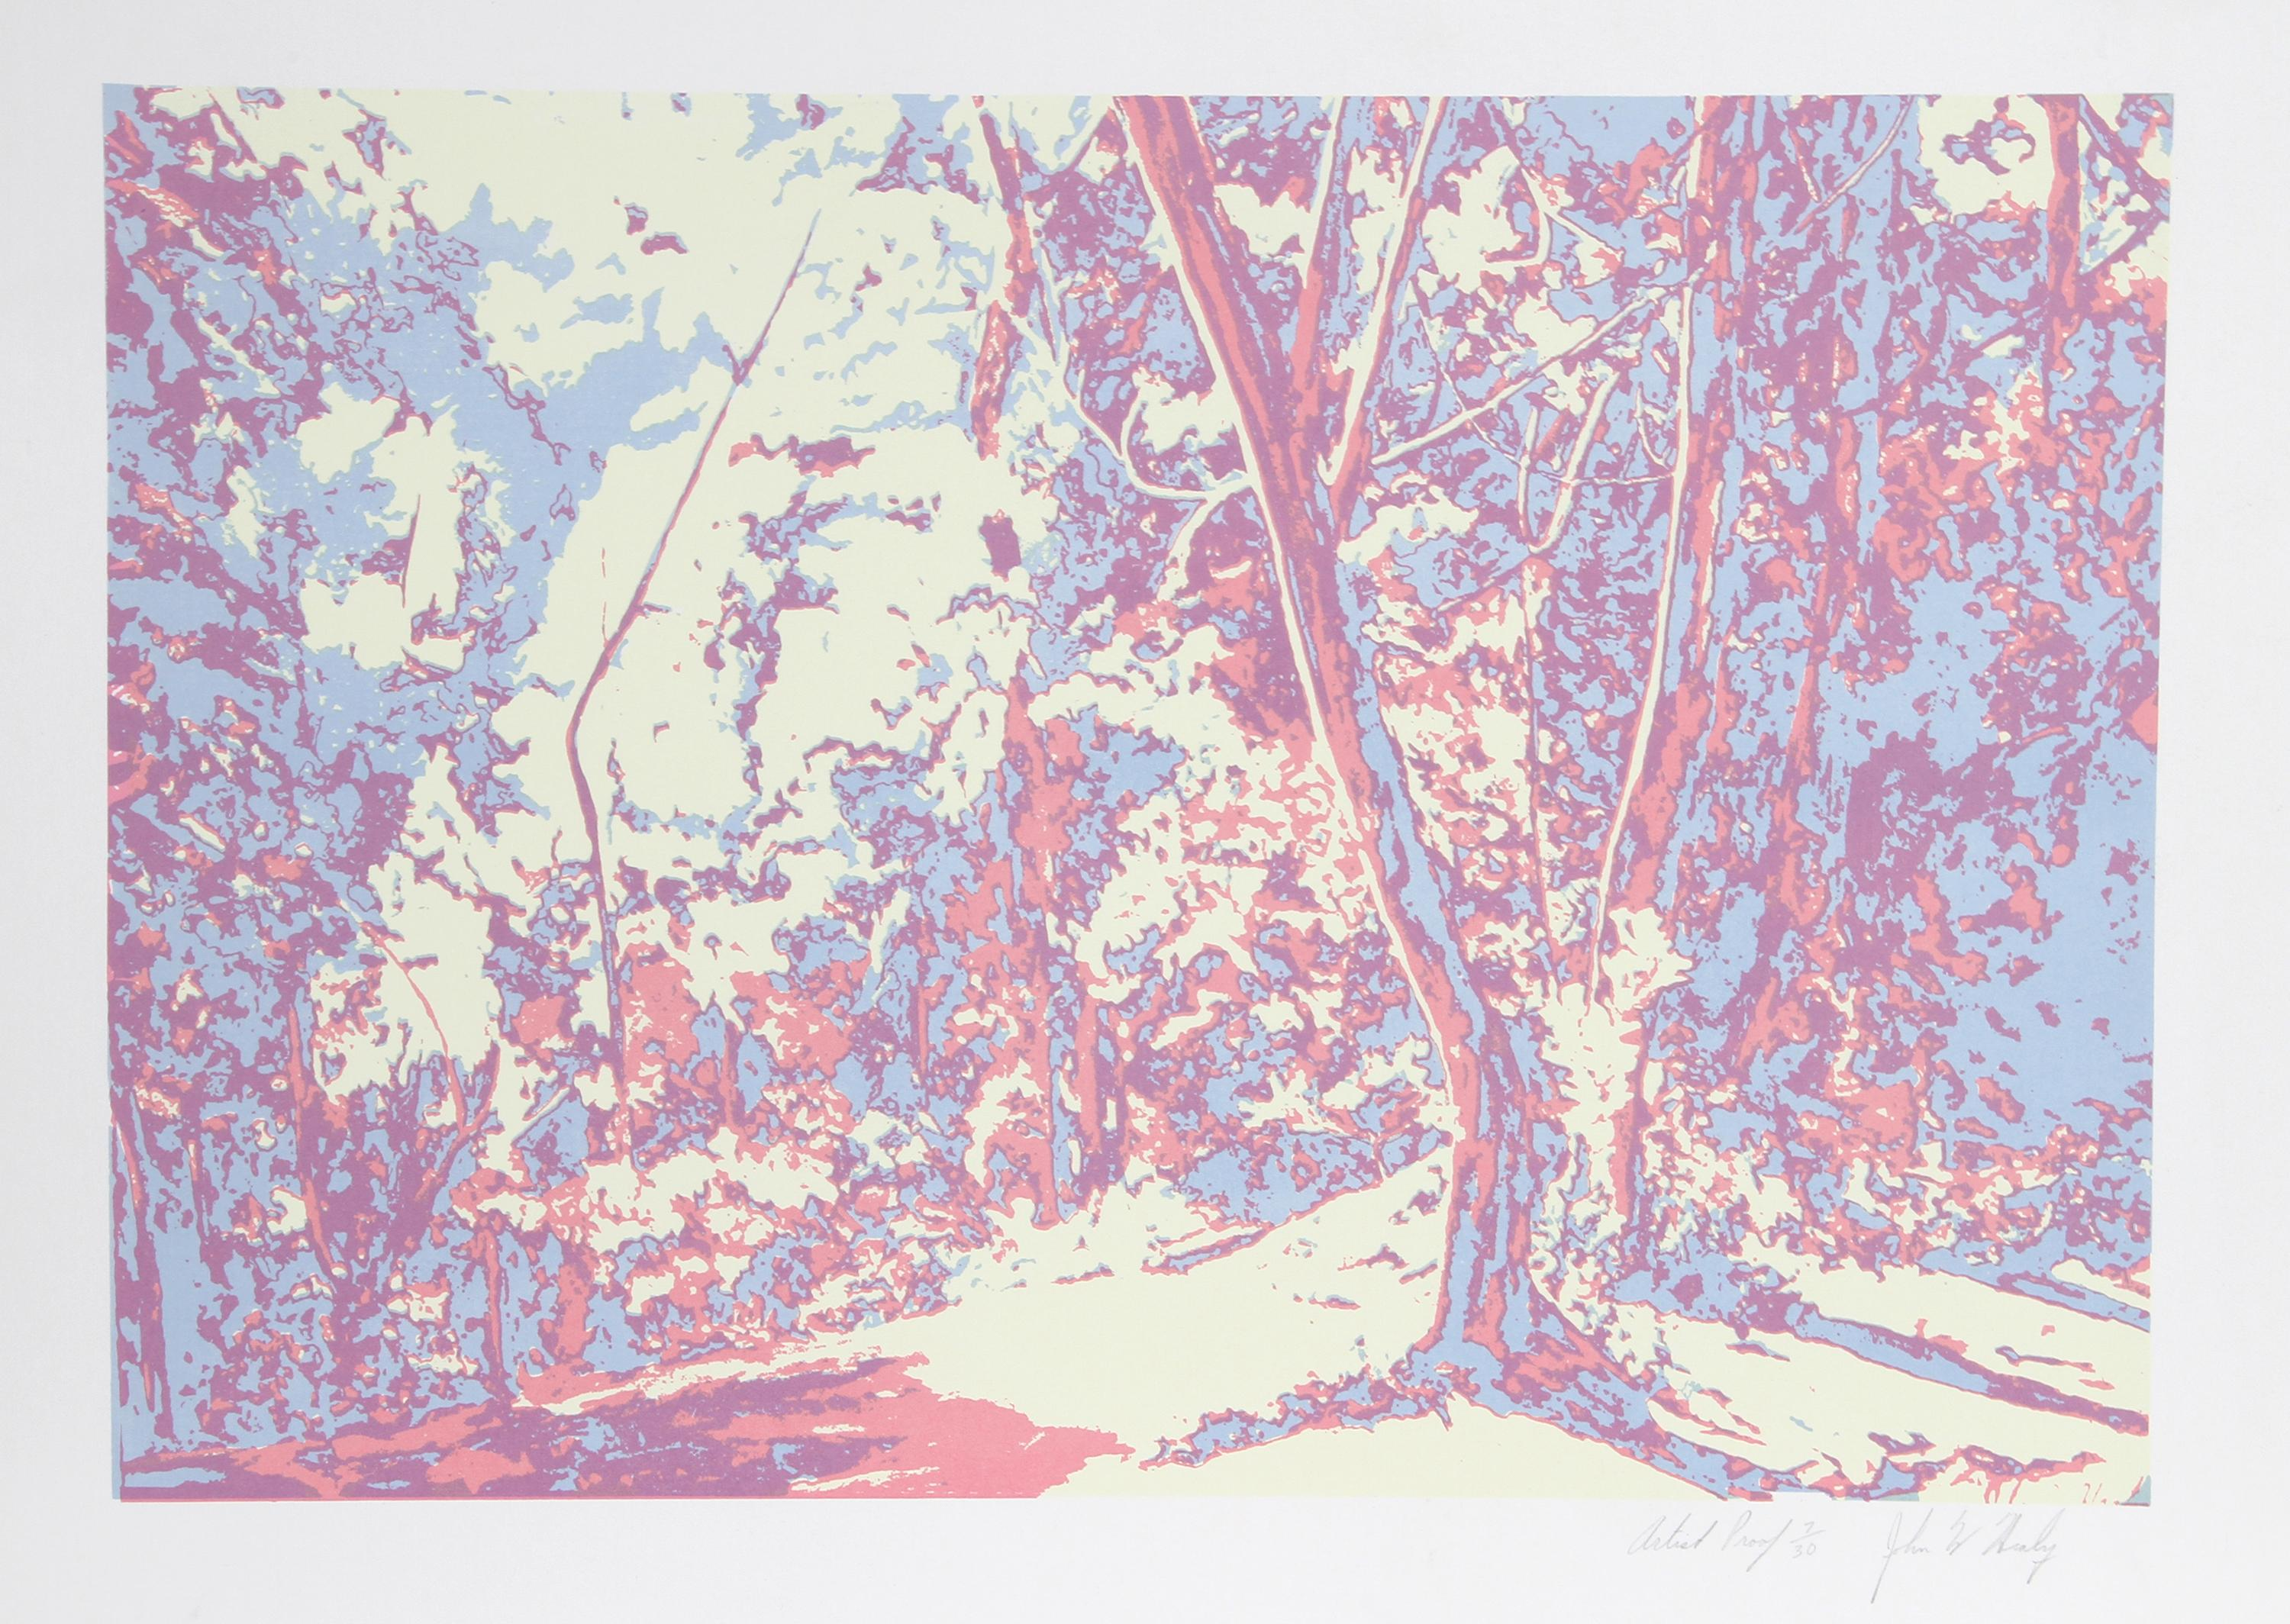 John M. Healy, Forest Landscape, Serigraph